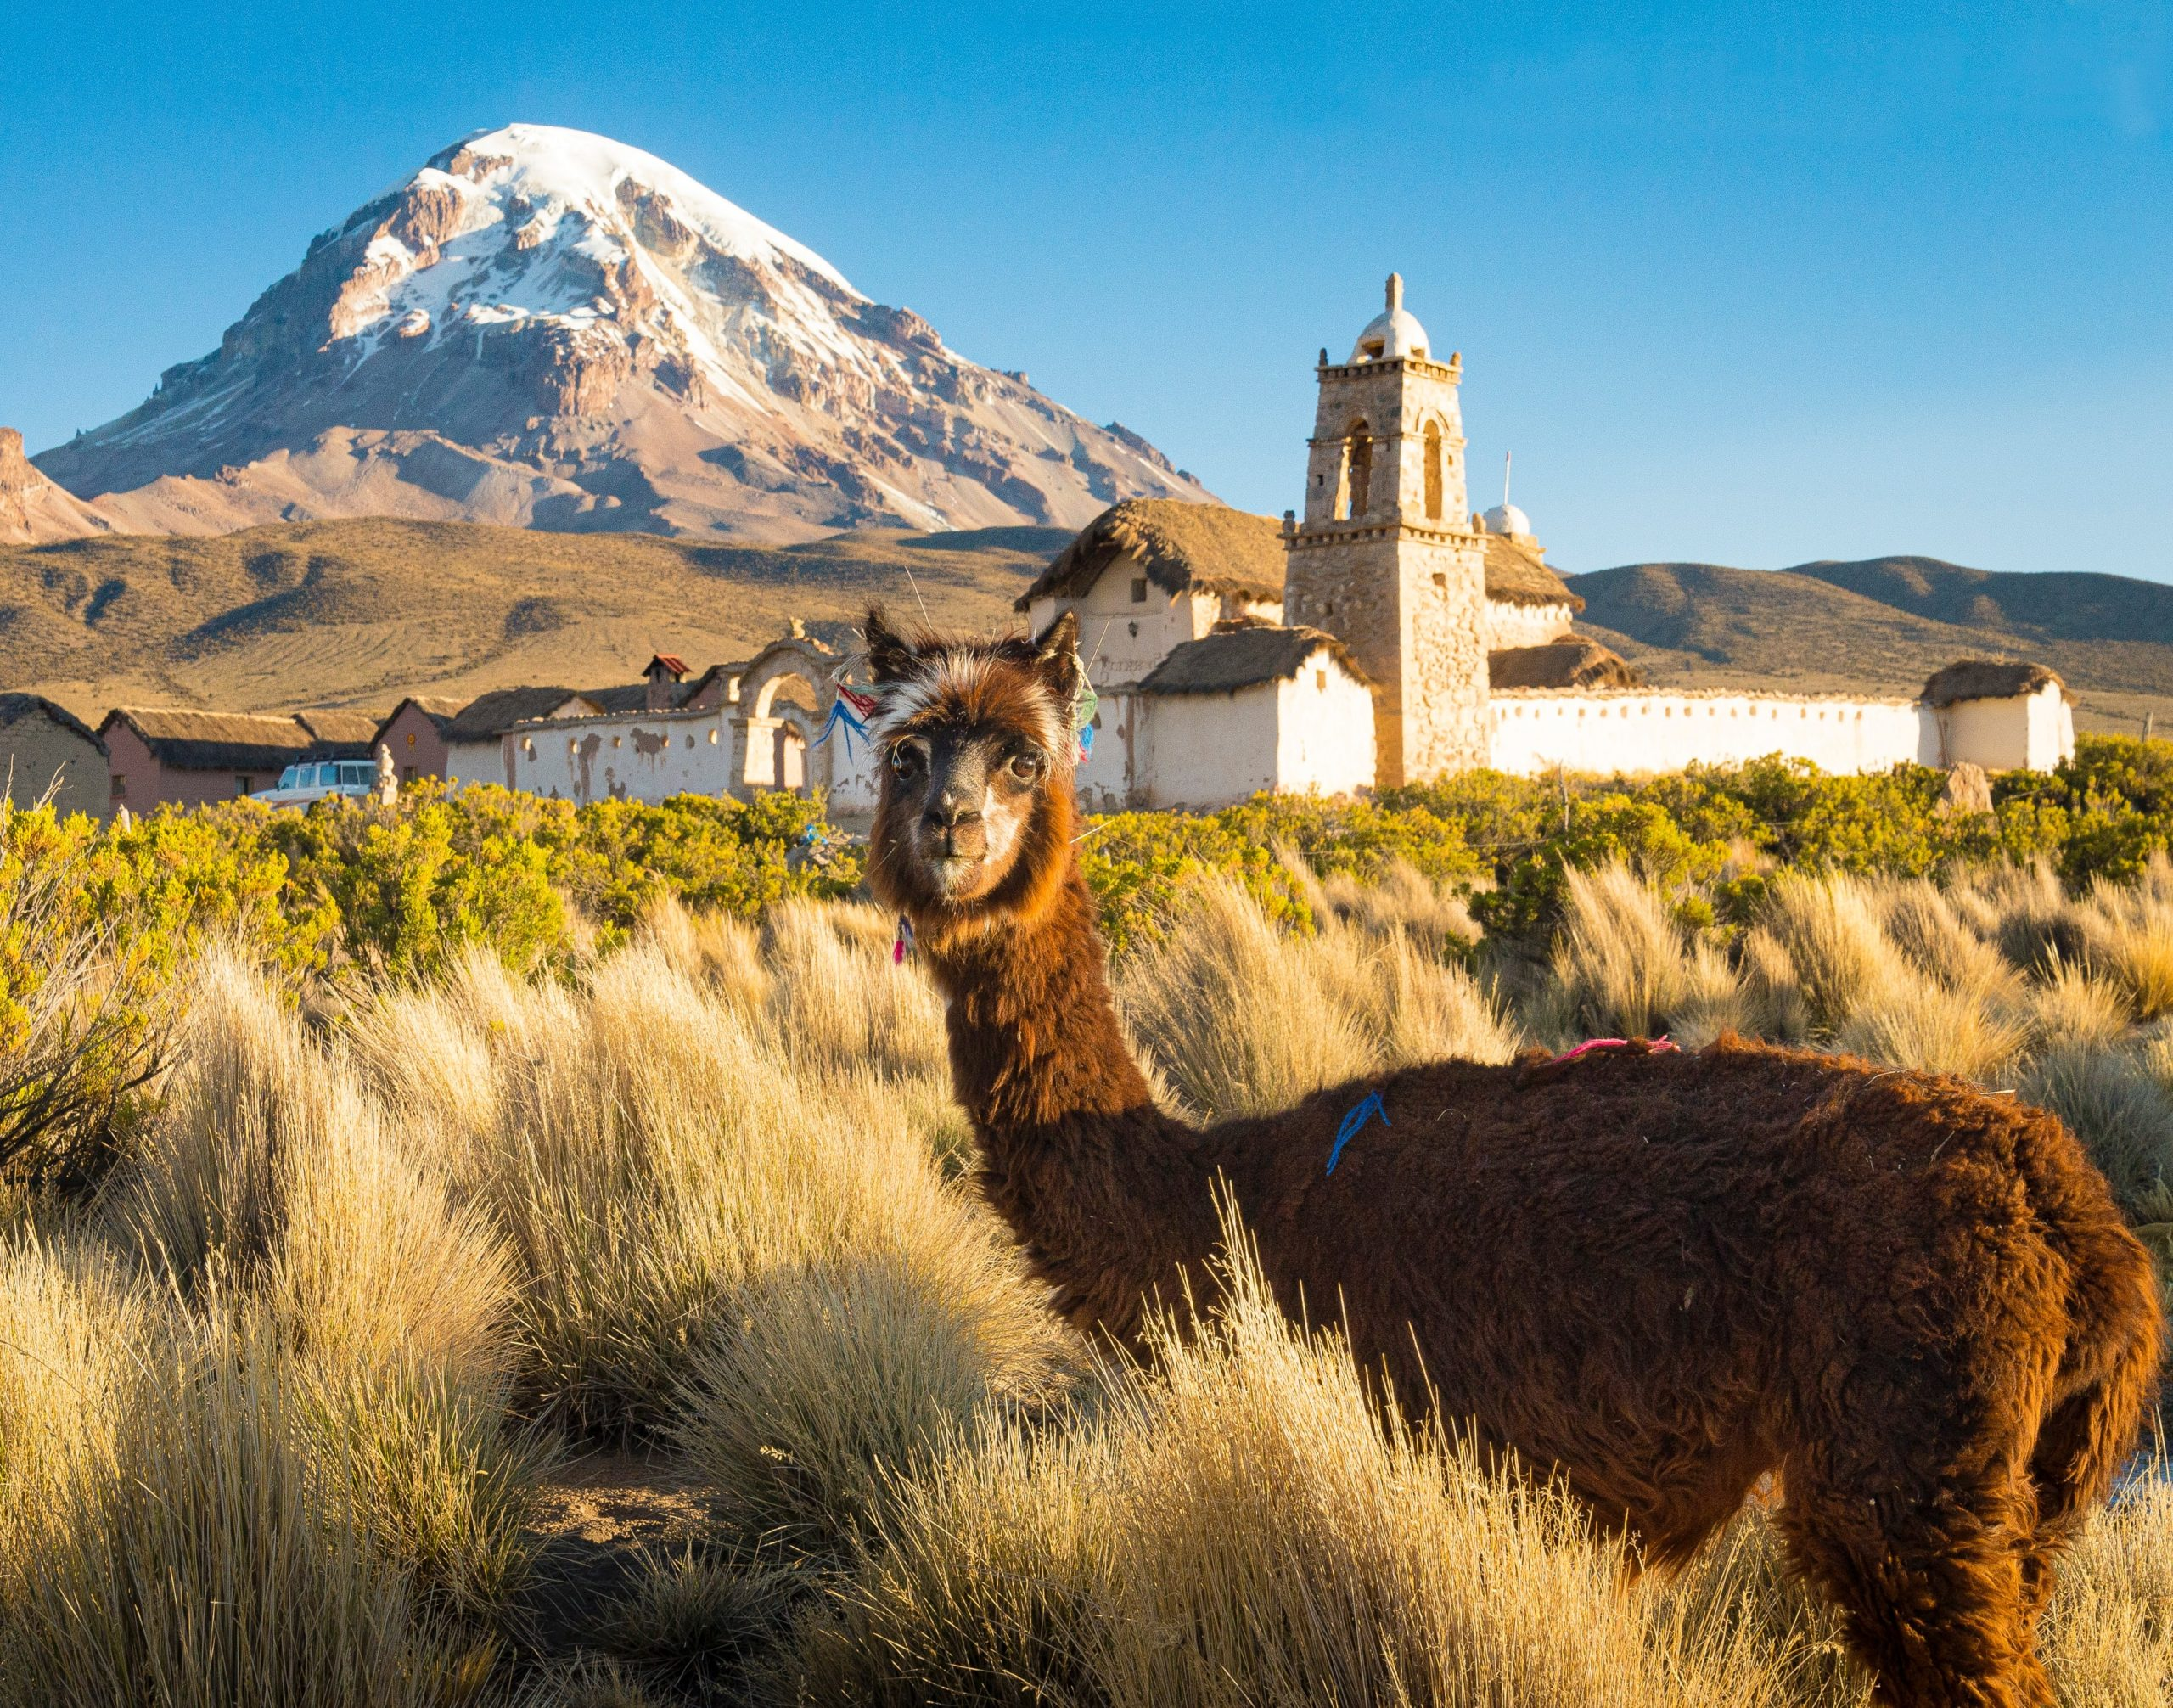 7 Reasons To Visit Bolivia Now - The Best Things To Do in Bolivia